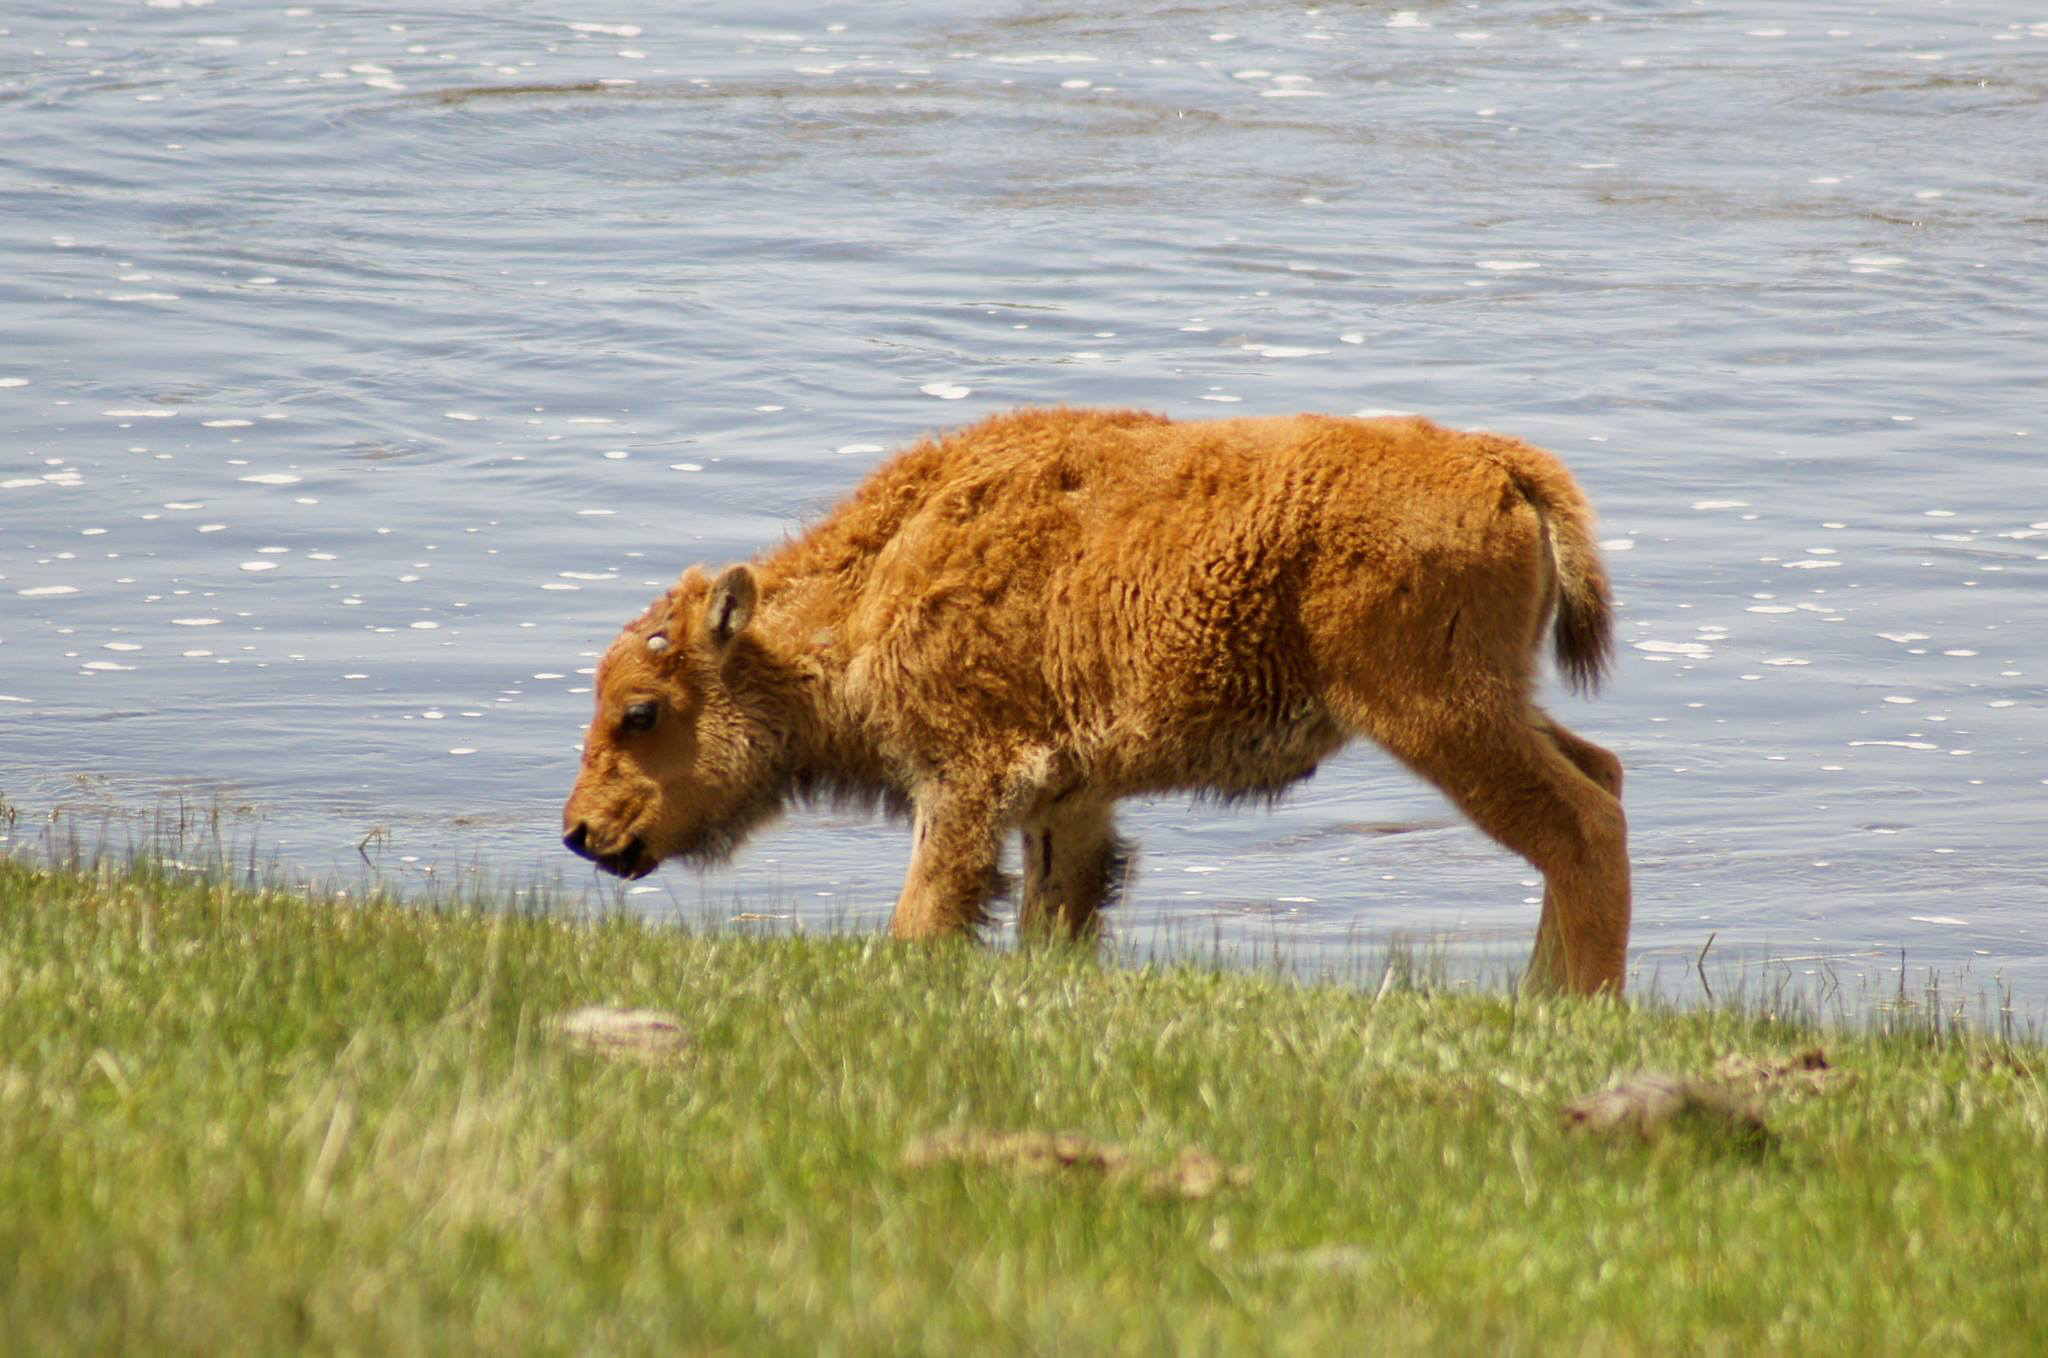 Bison calf and water.jpg